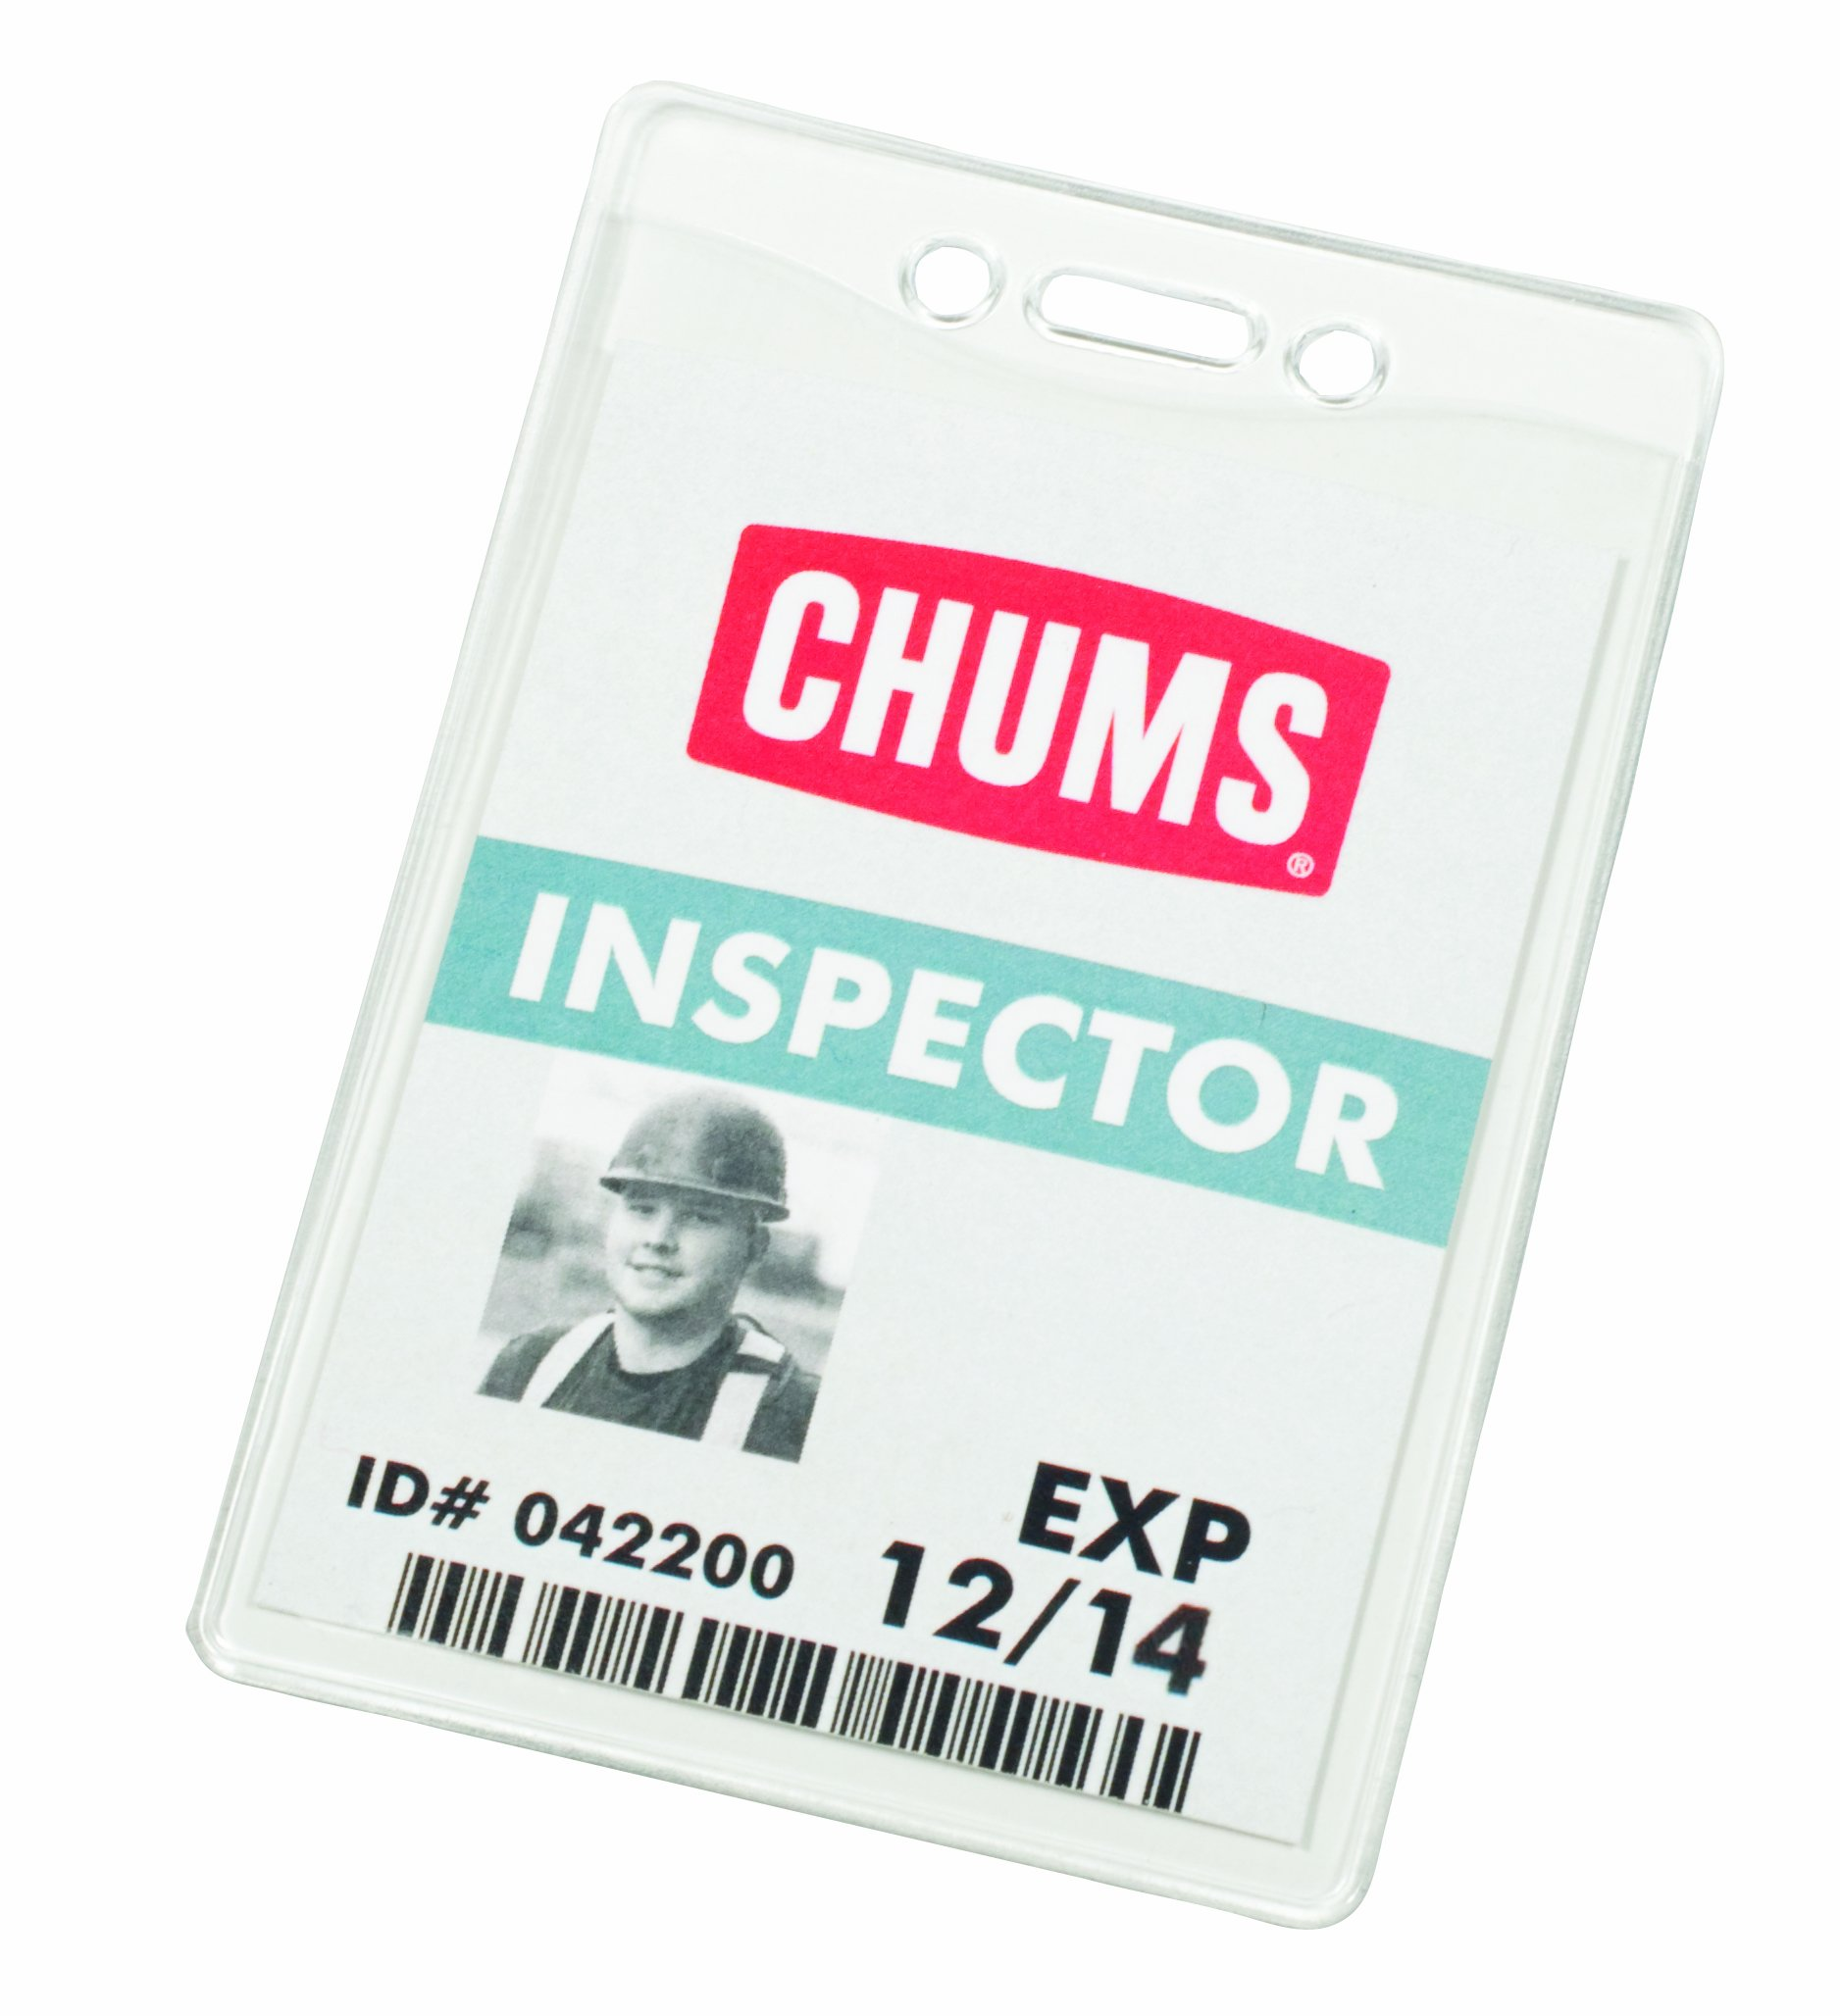 Chums Safety 30032 Heavy Duty Vinyl Sleeve, 2-3/4'' Width x 4'' Height, For Vertically Oriented Security Passes and Ids (Pack of 10) by Chums